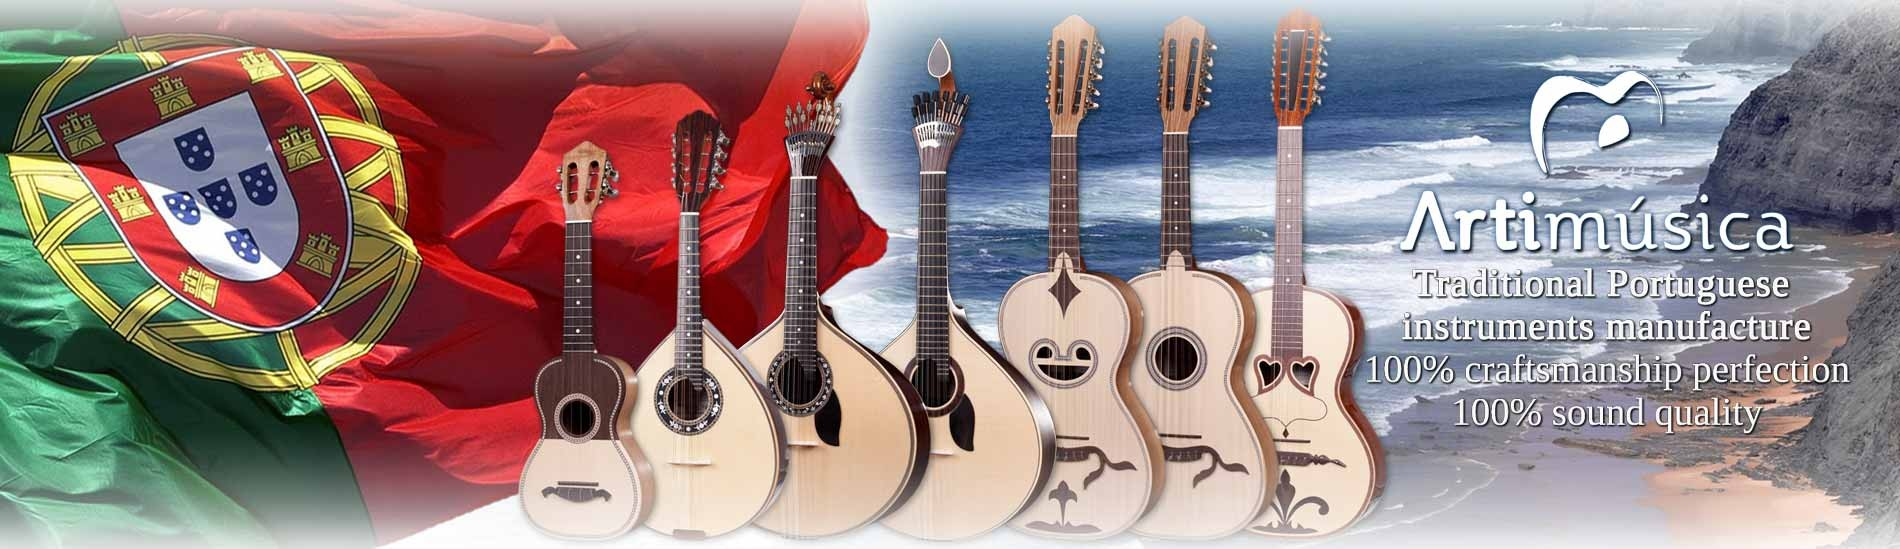 Artimúsica - Traditional Portuguese instruments manufacture